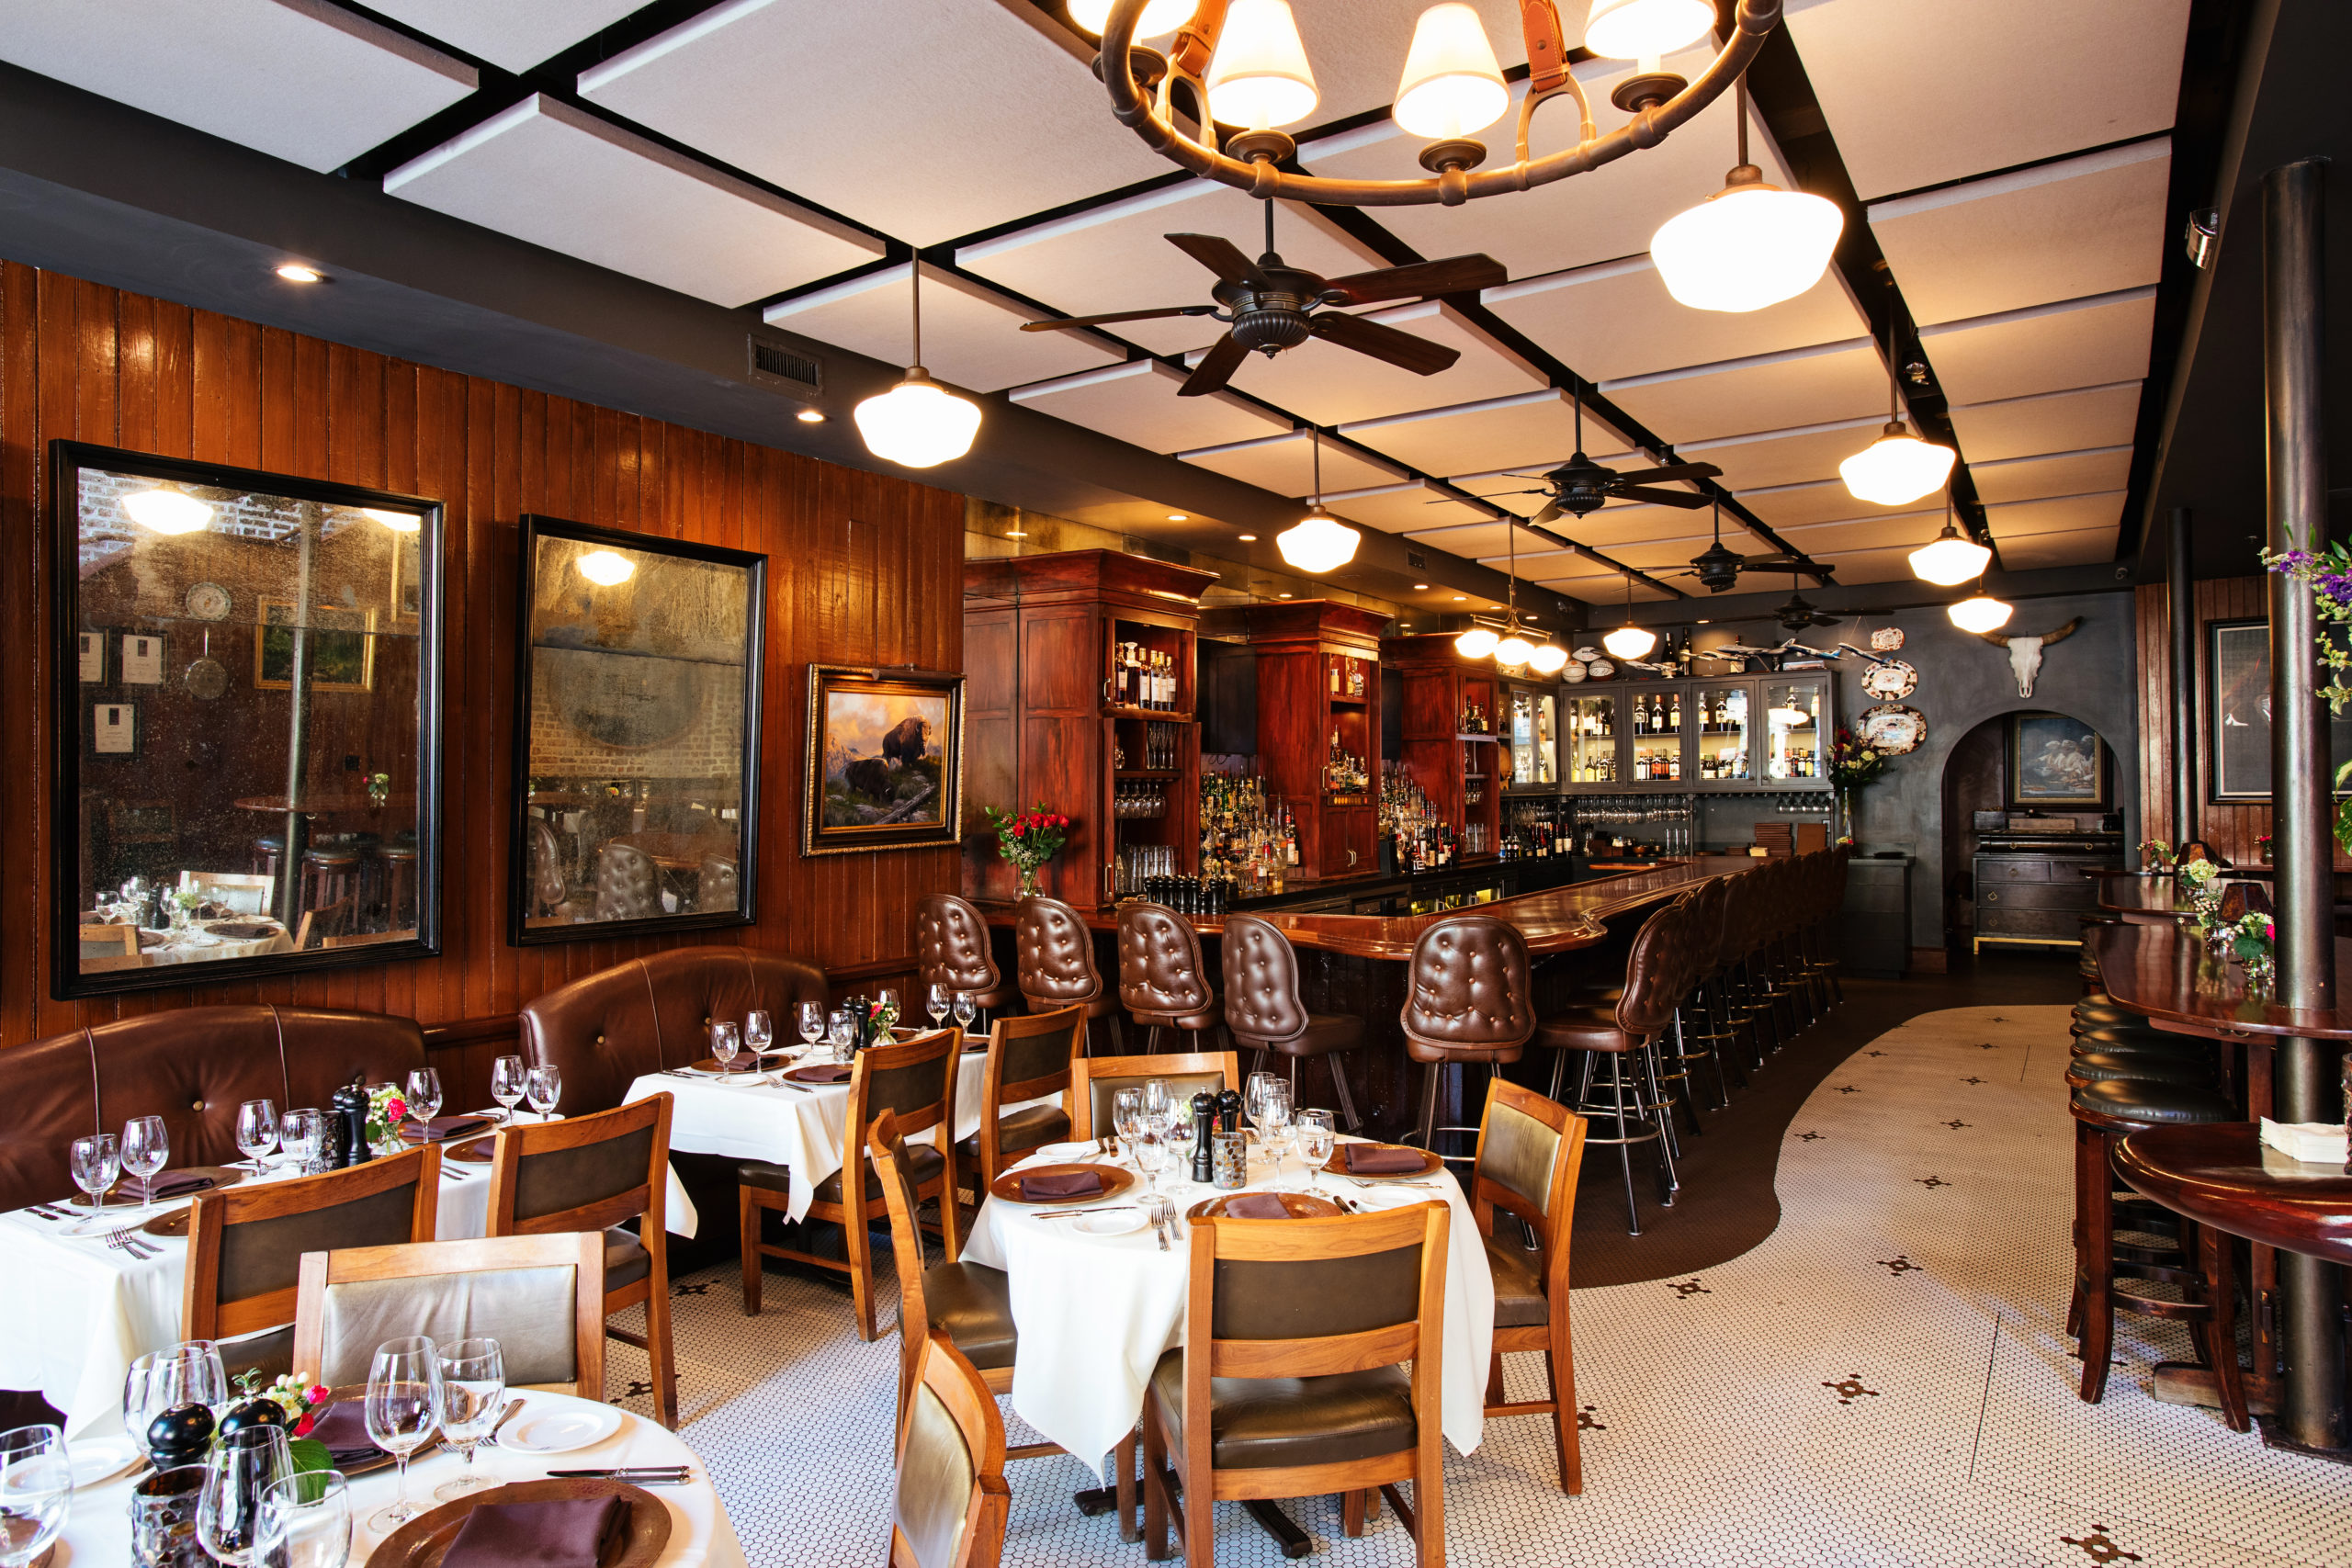 restaurant bar with leather bar stools, dark wood paneling, and intimate dining tables with elegant table settings